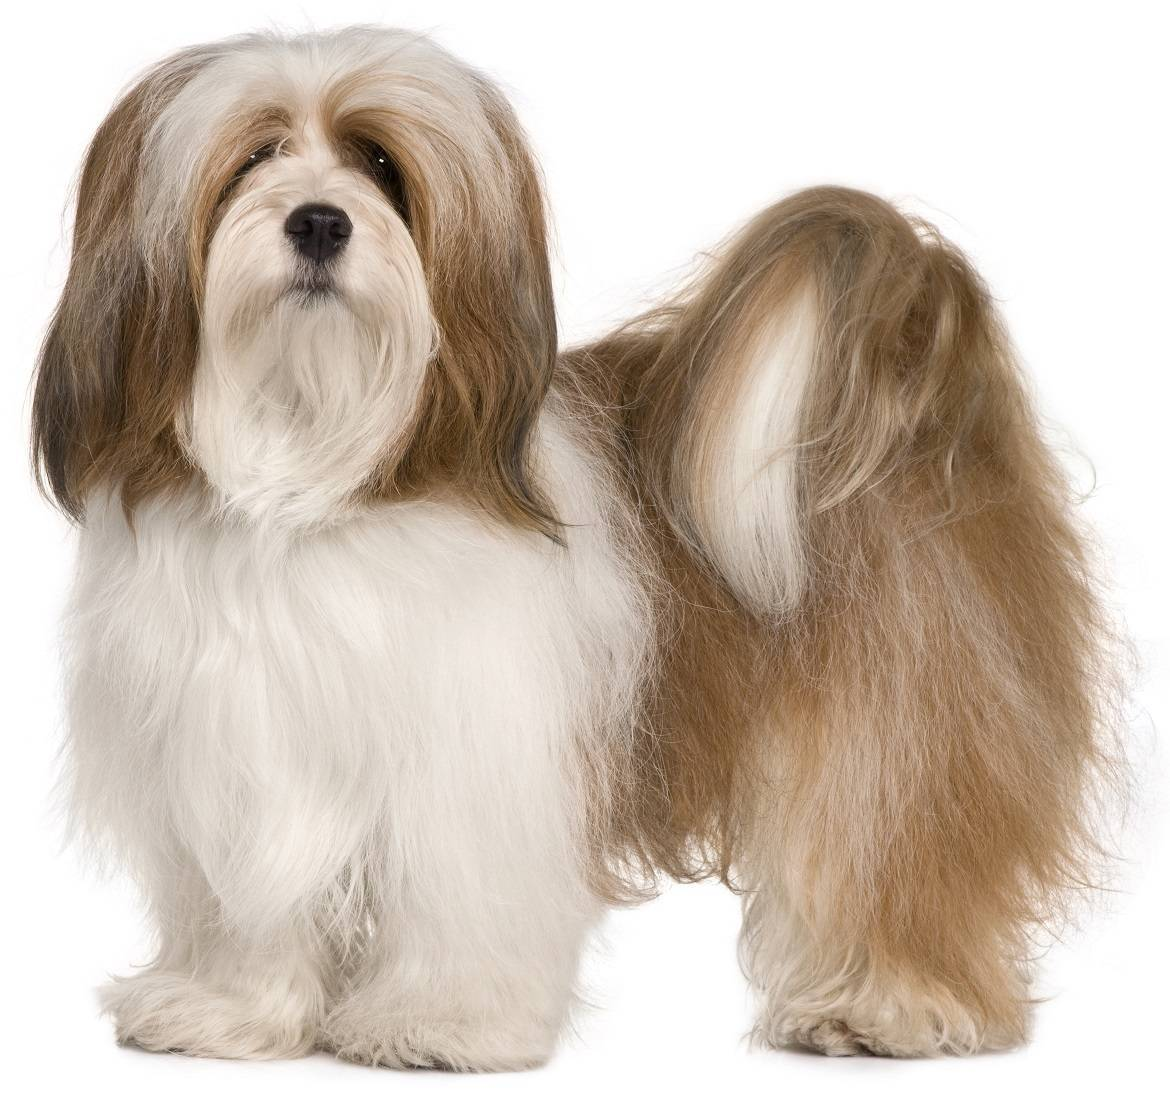 Lhasa Apso Breed